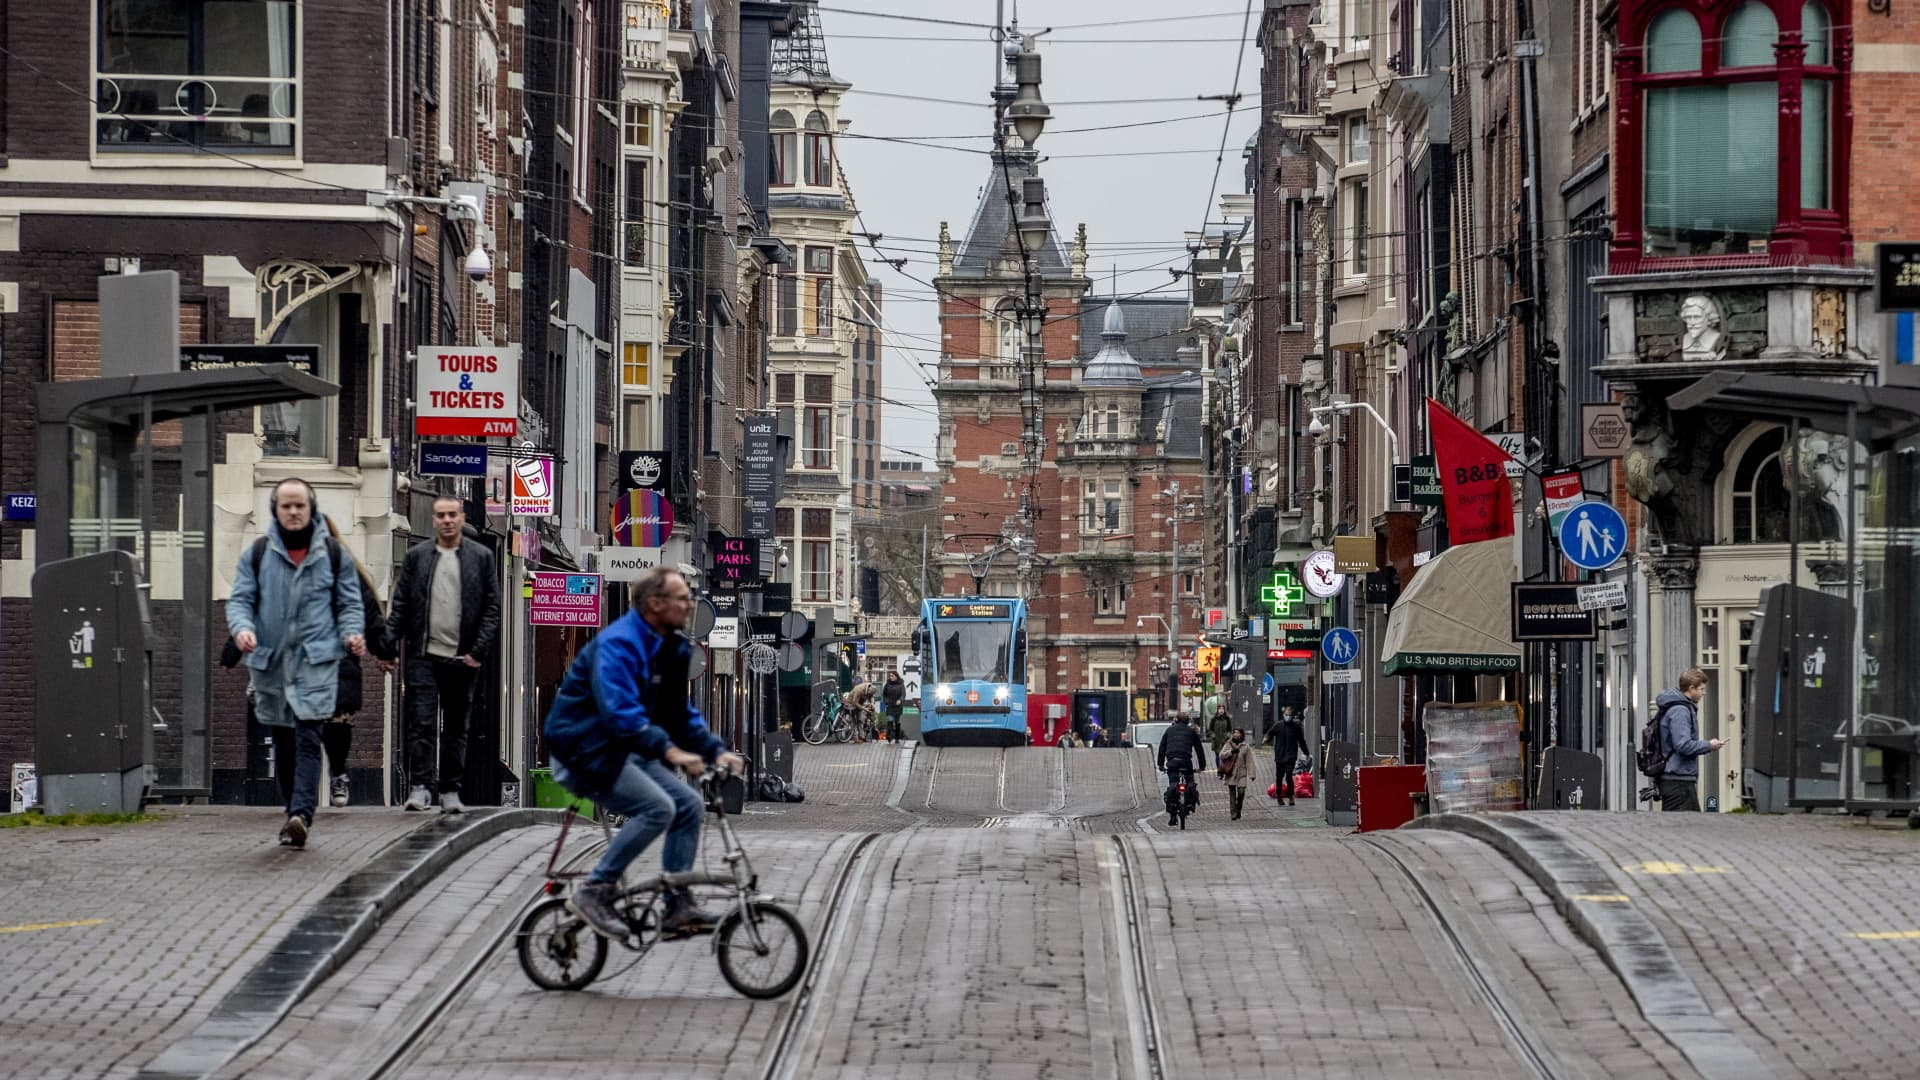 View of an almost deserted city center on December 15, 2020 in Amsterdam, Netherlands.